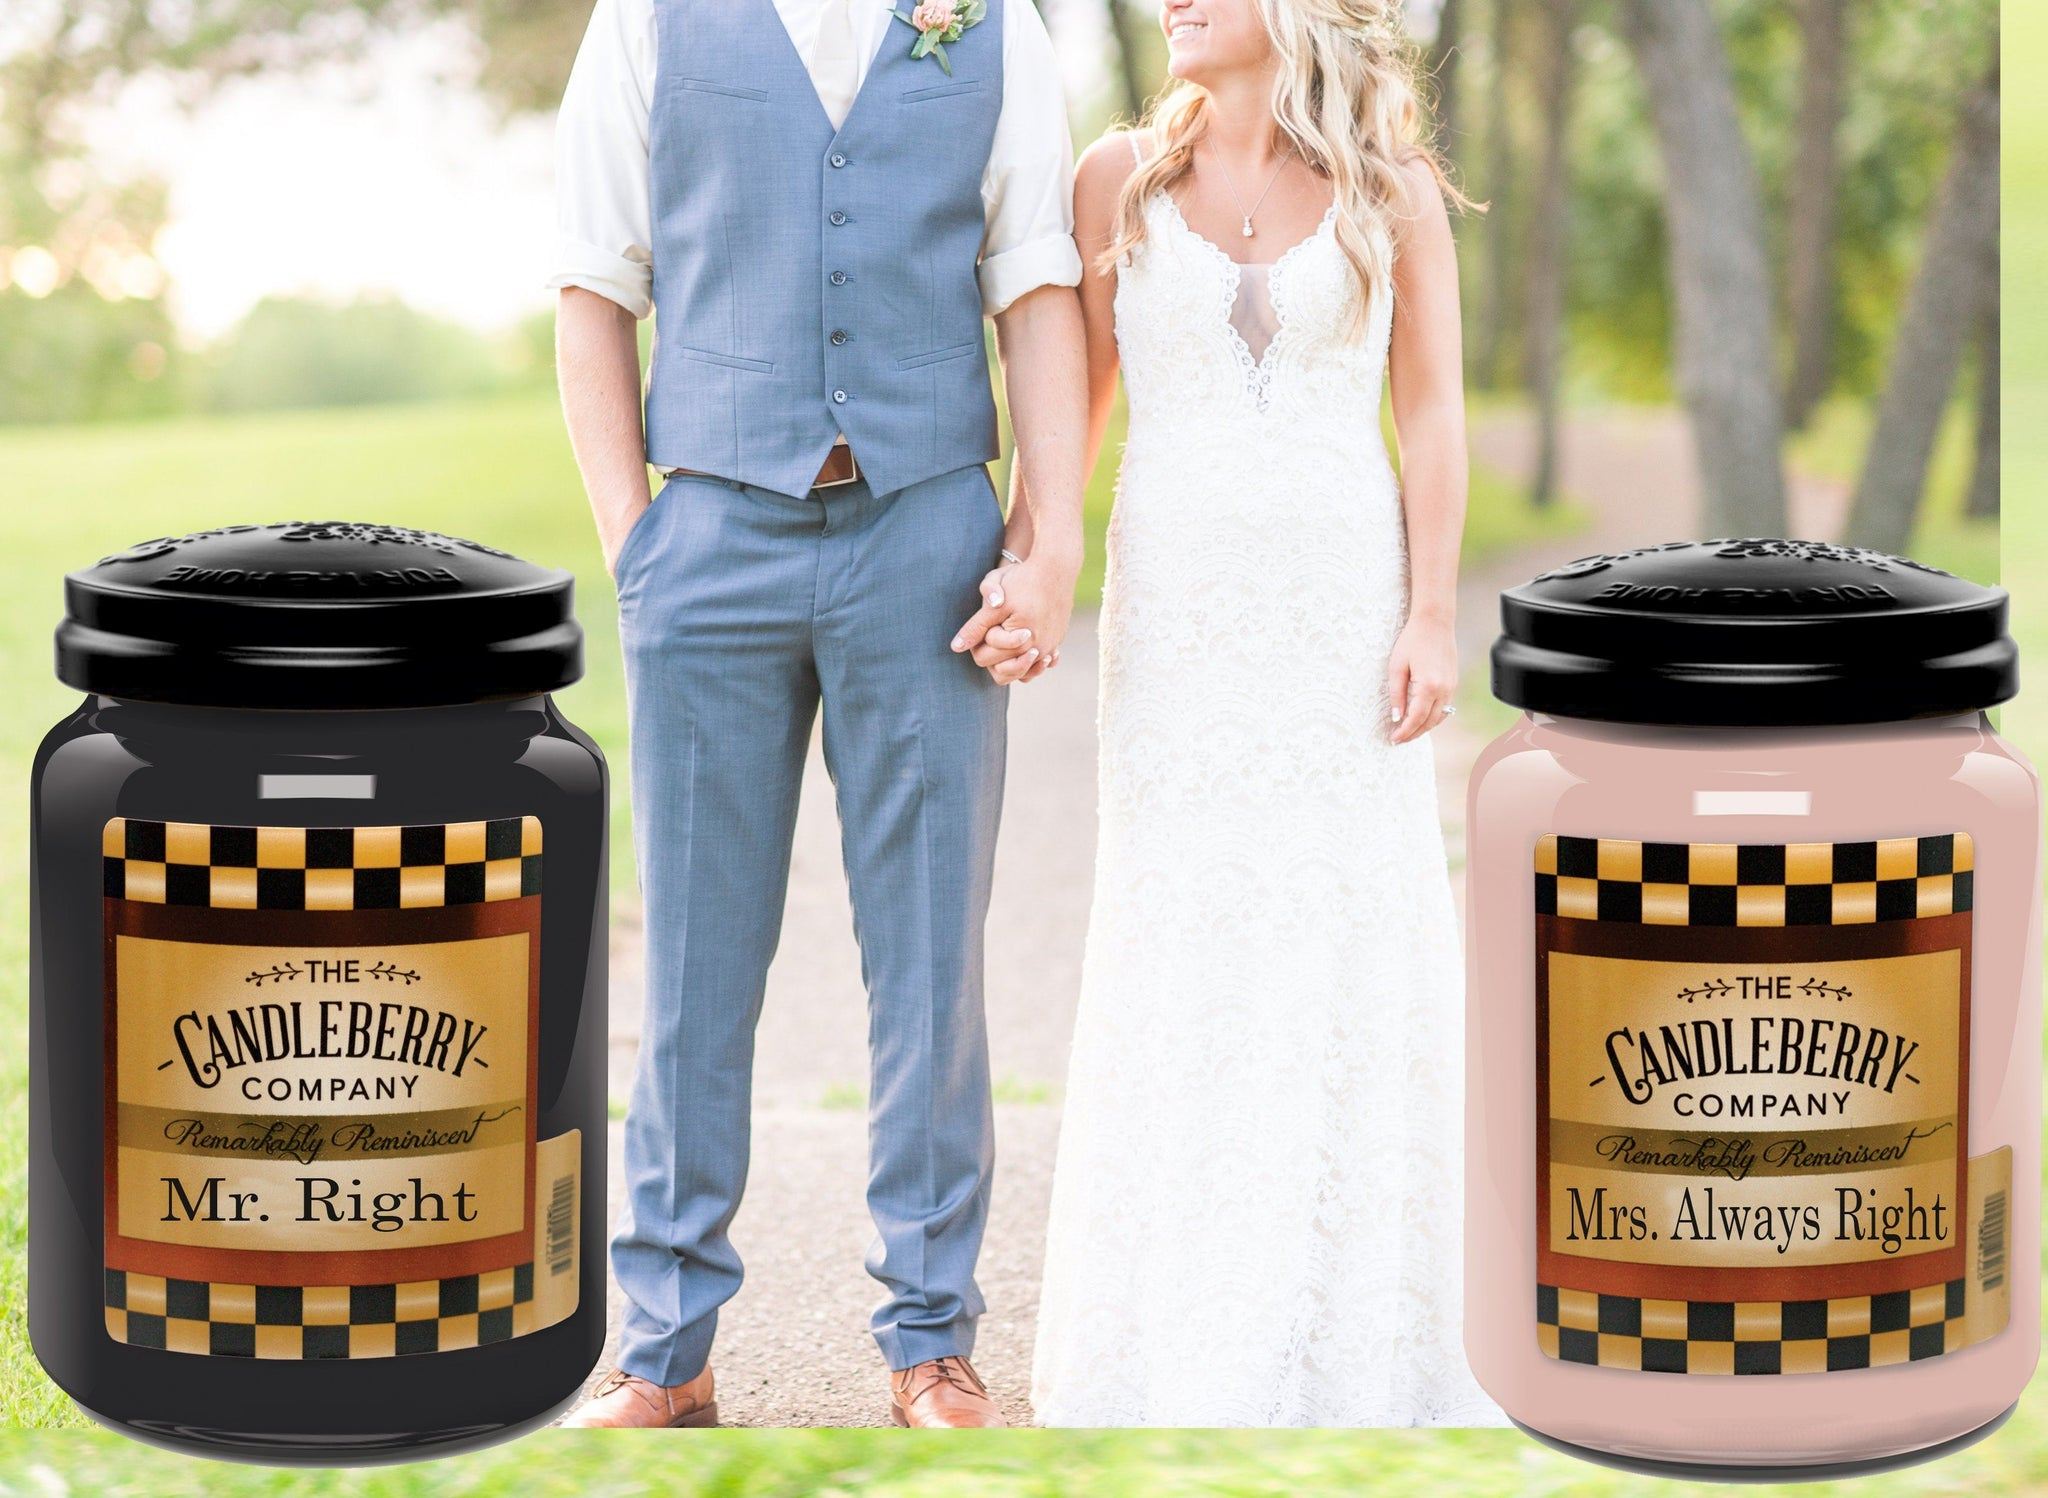 Creative Ways to Have a Memorable Wedding: Personalized Gifts.